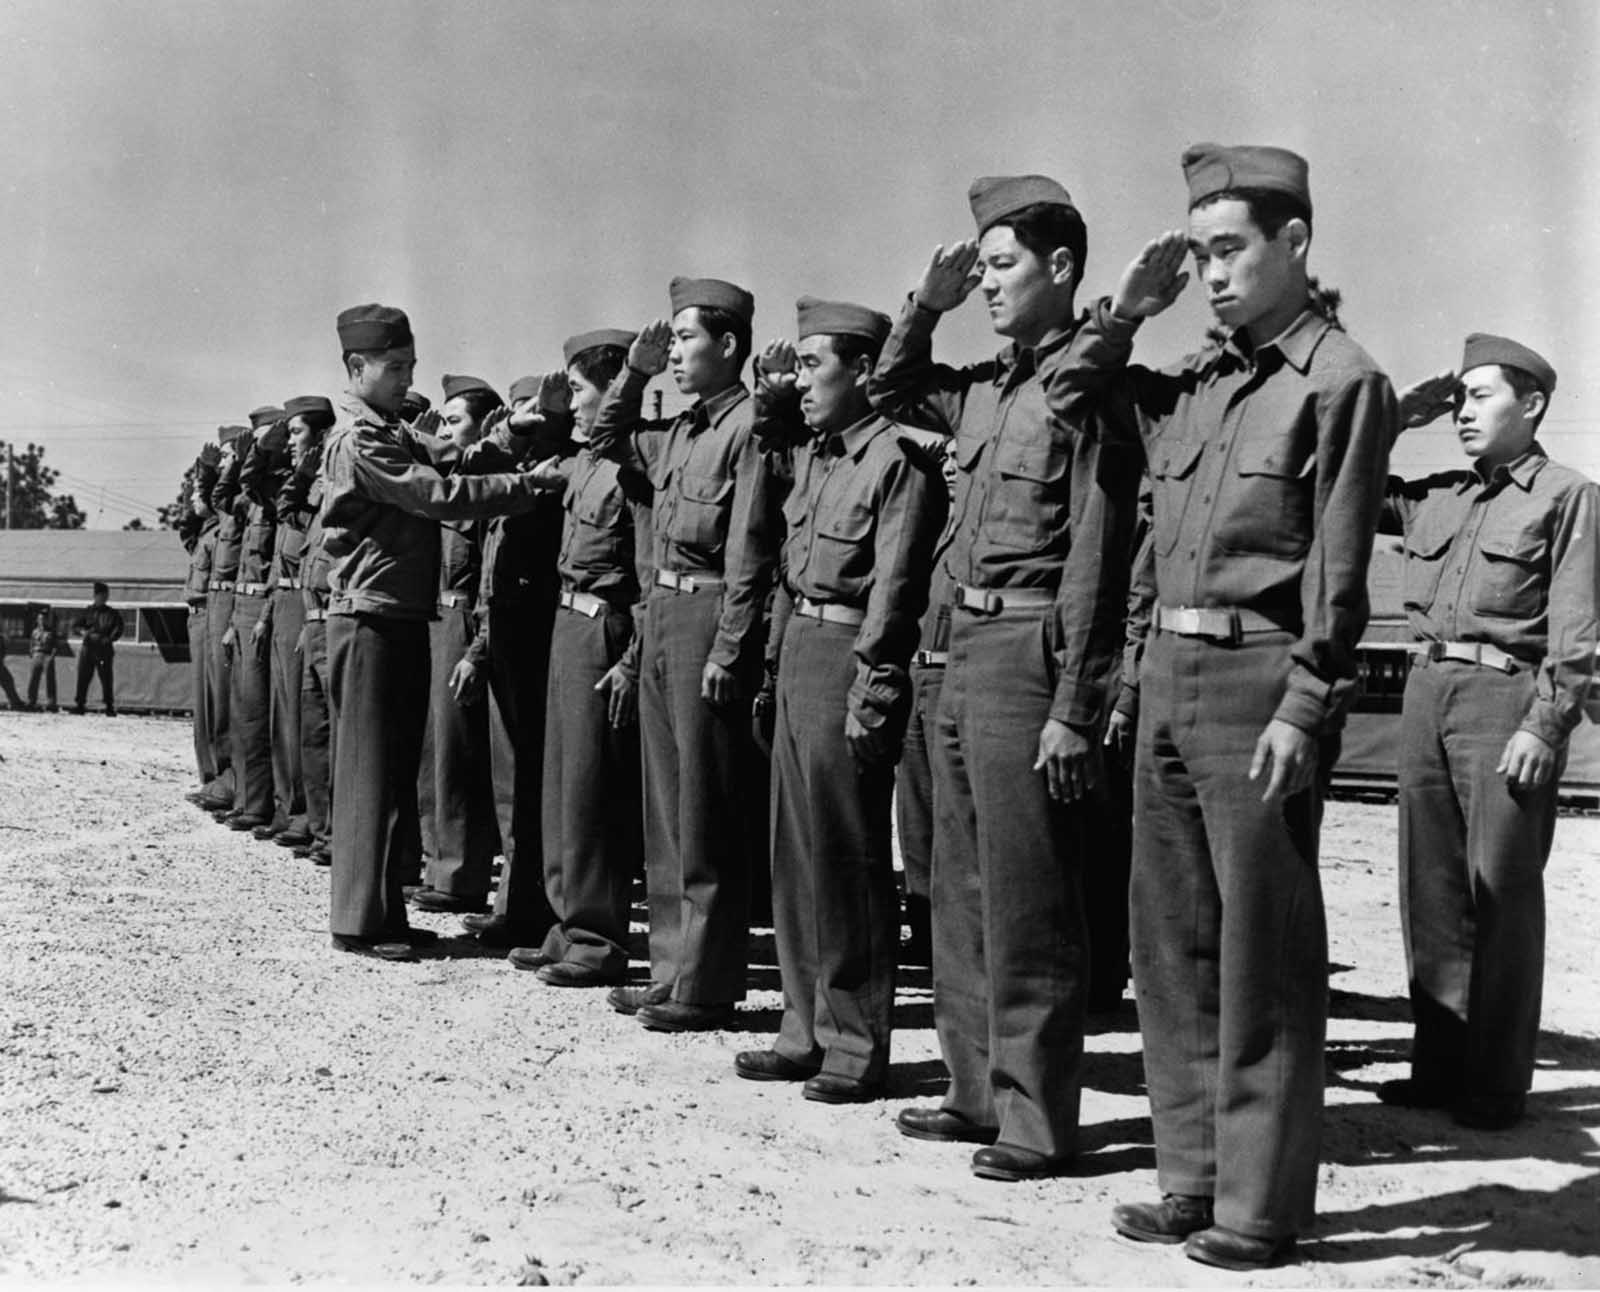 This Japanese-American fighting unit was one of WWII's most